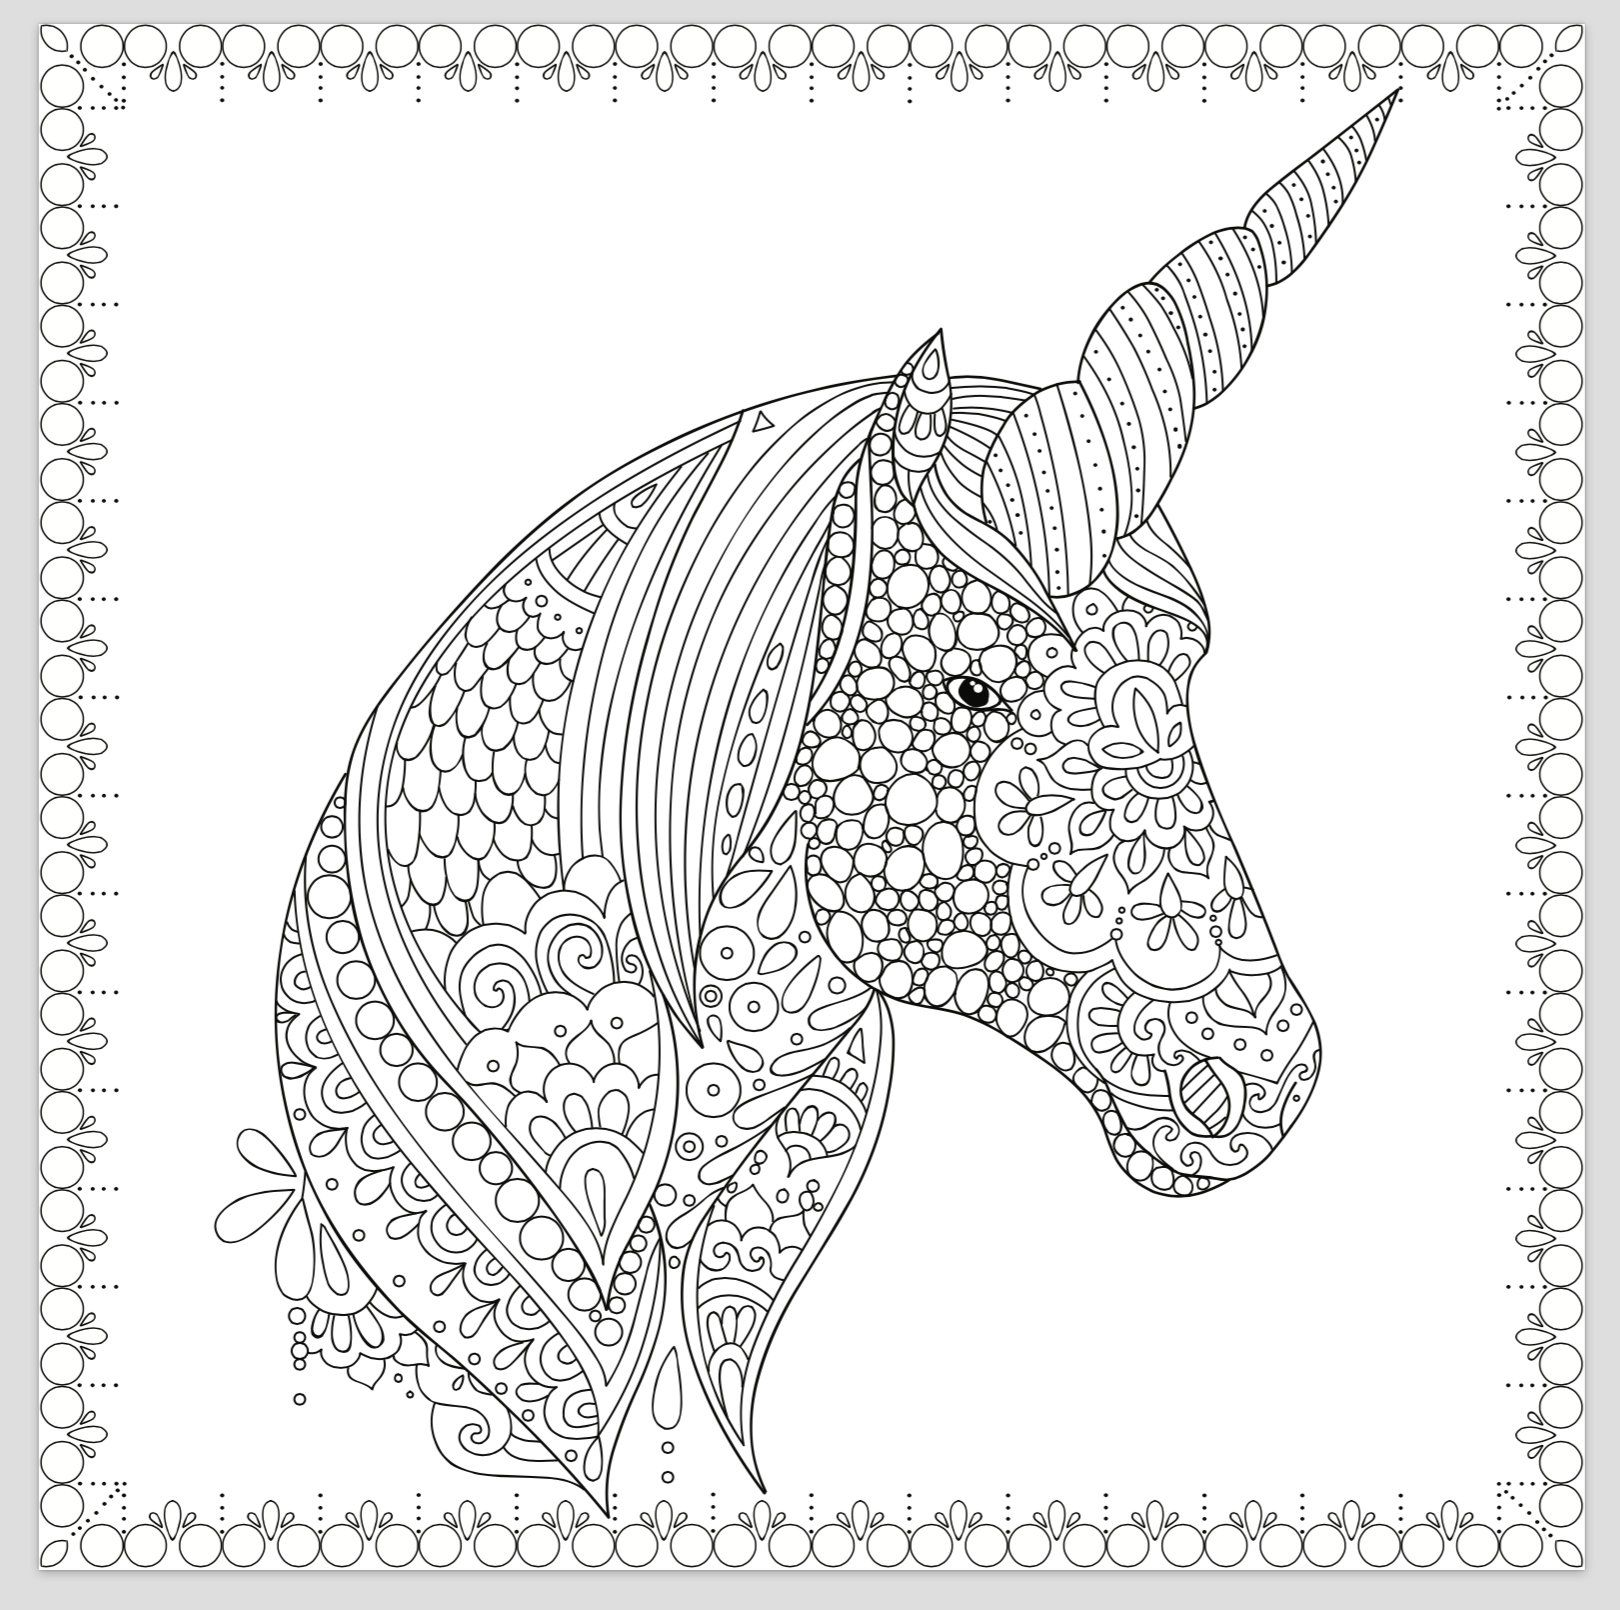 Printable Coloring Page Zentangle Unicorn Coloring Book Unicorn Coloring Pages Coloring Book Art Coloring Pages